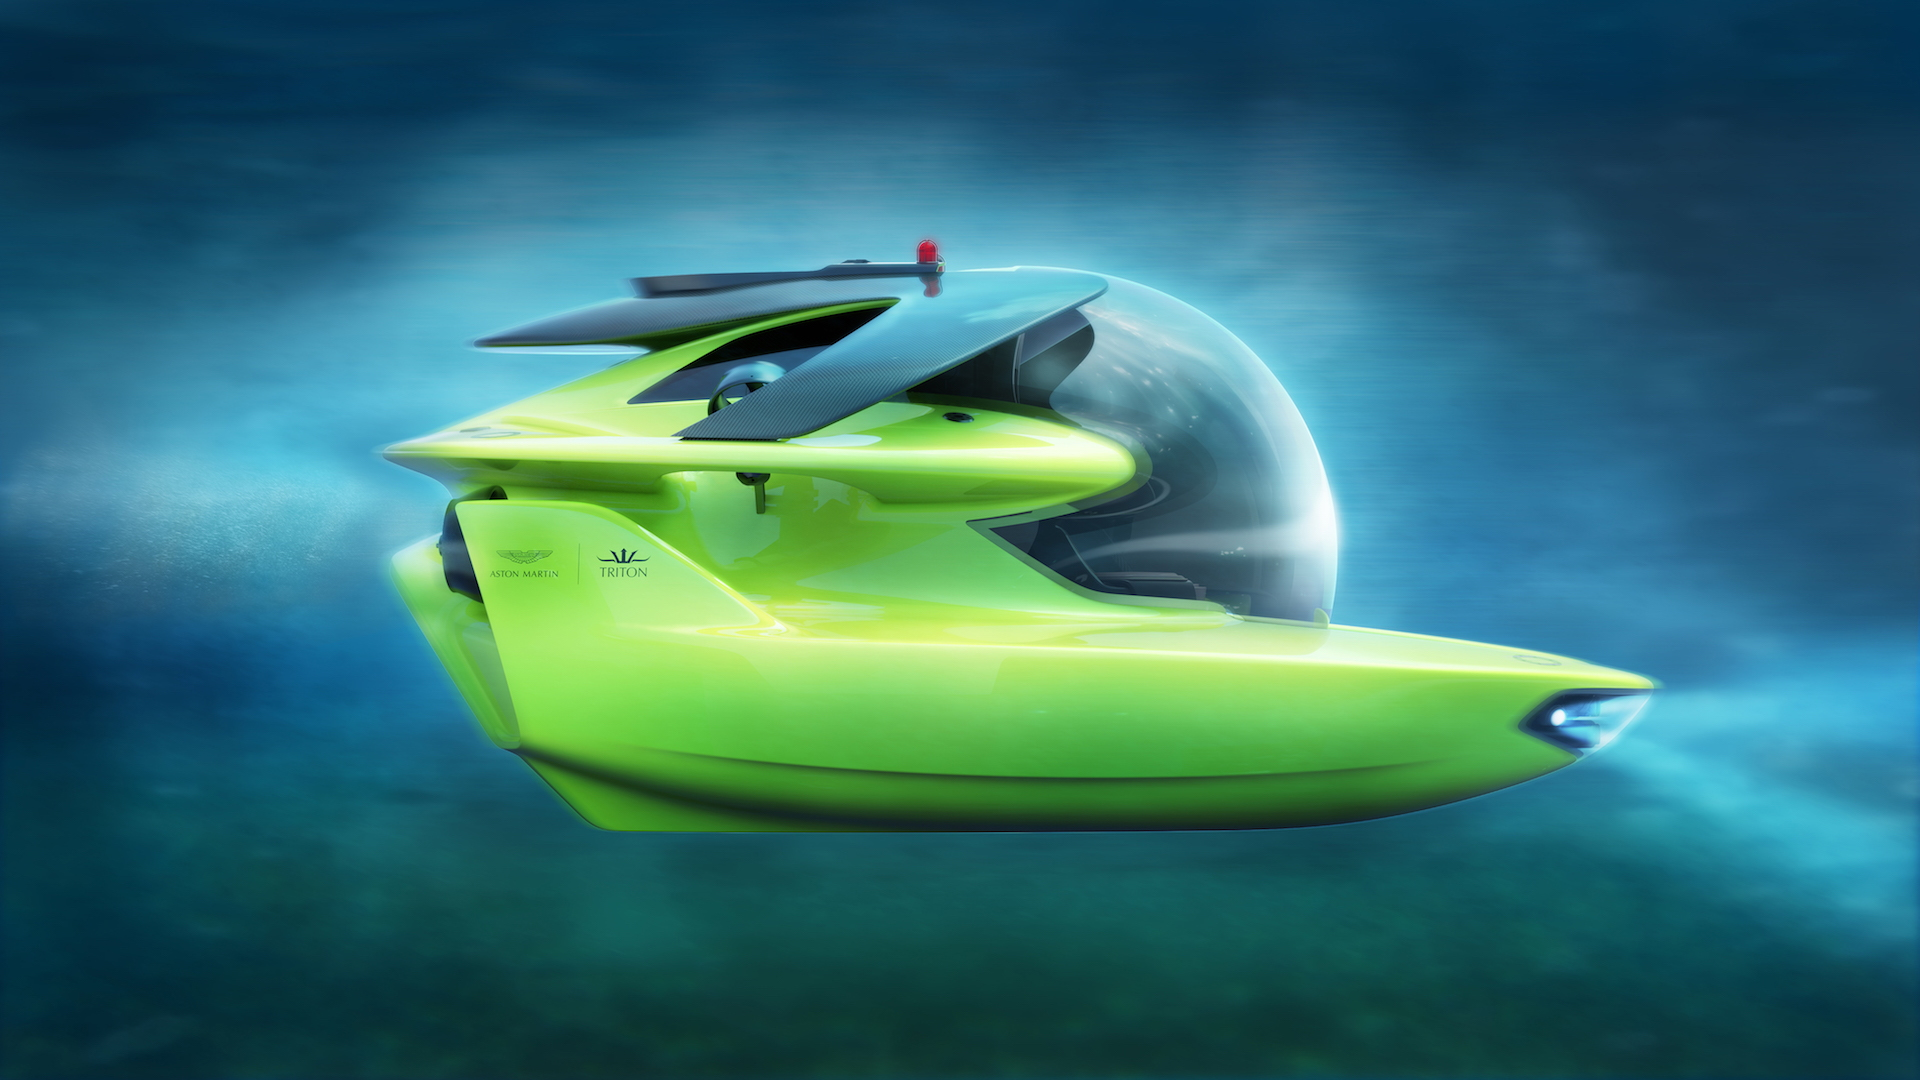 Aston Martin and Triton's Project Neptune submersible